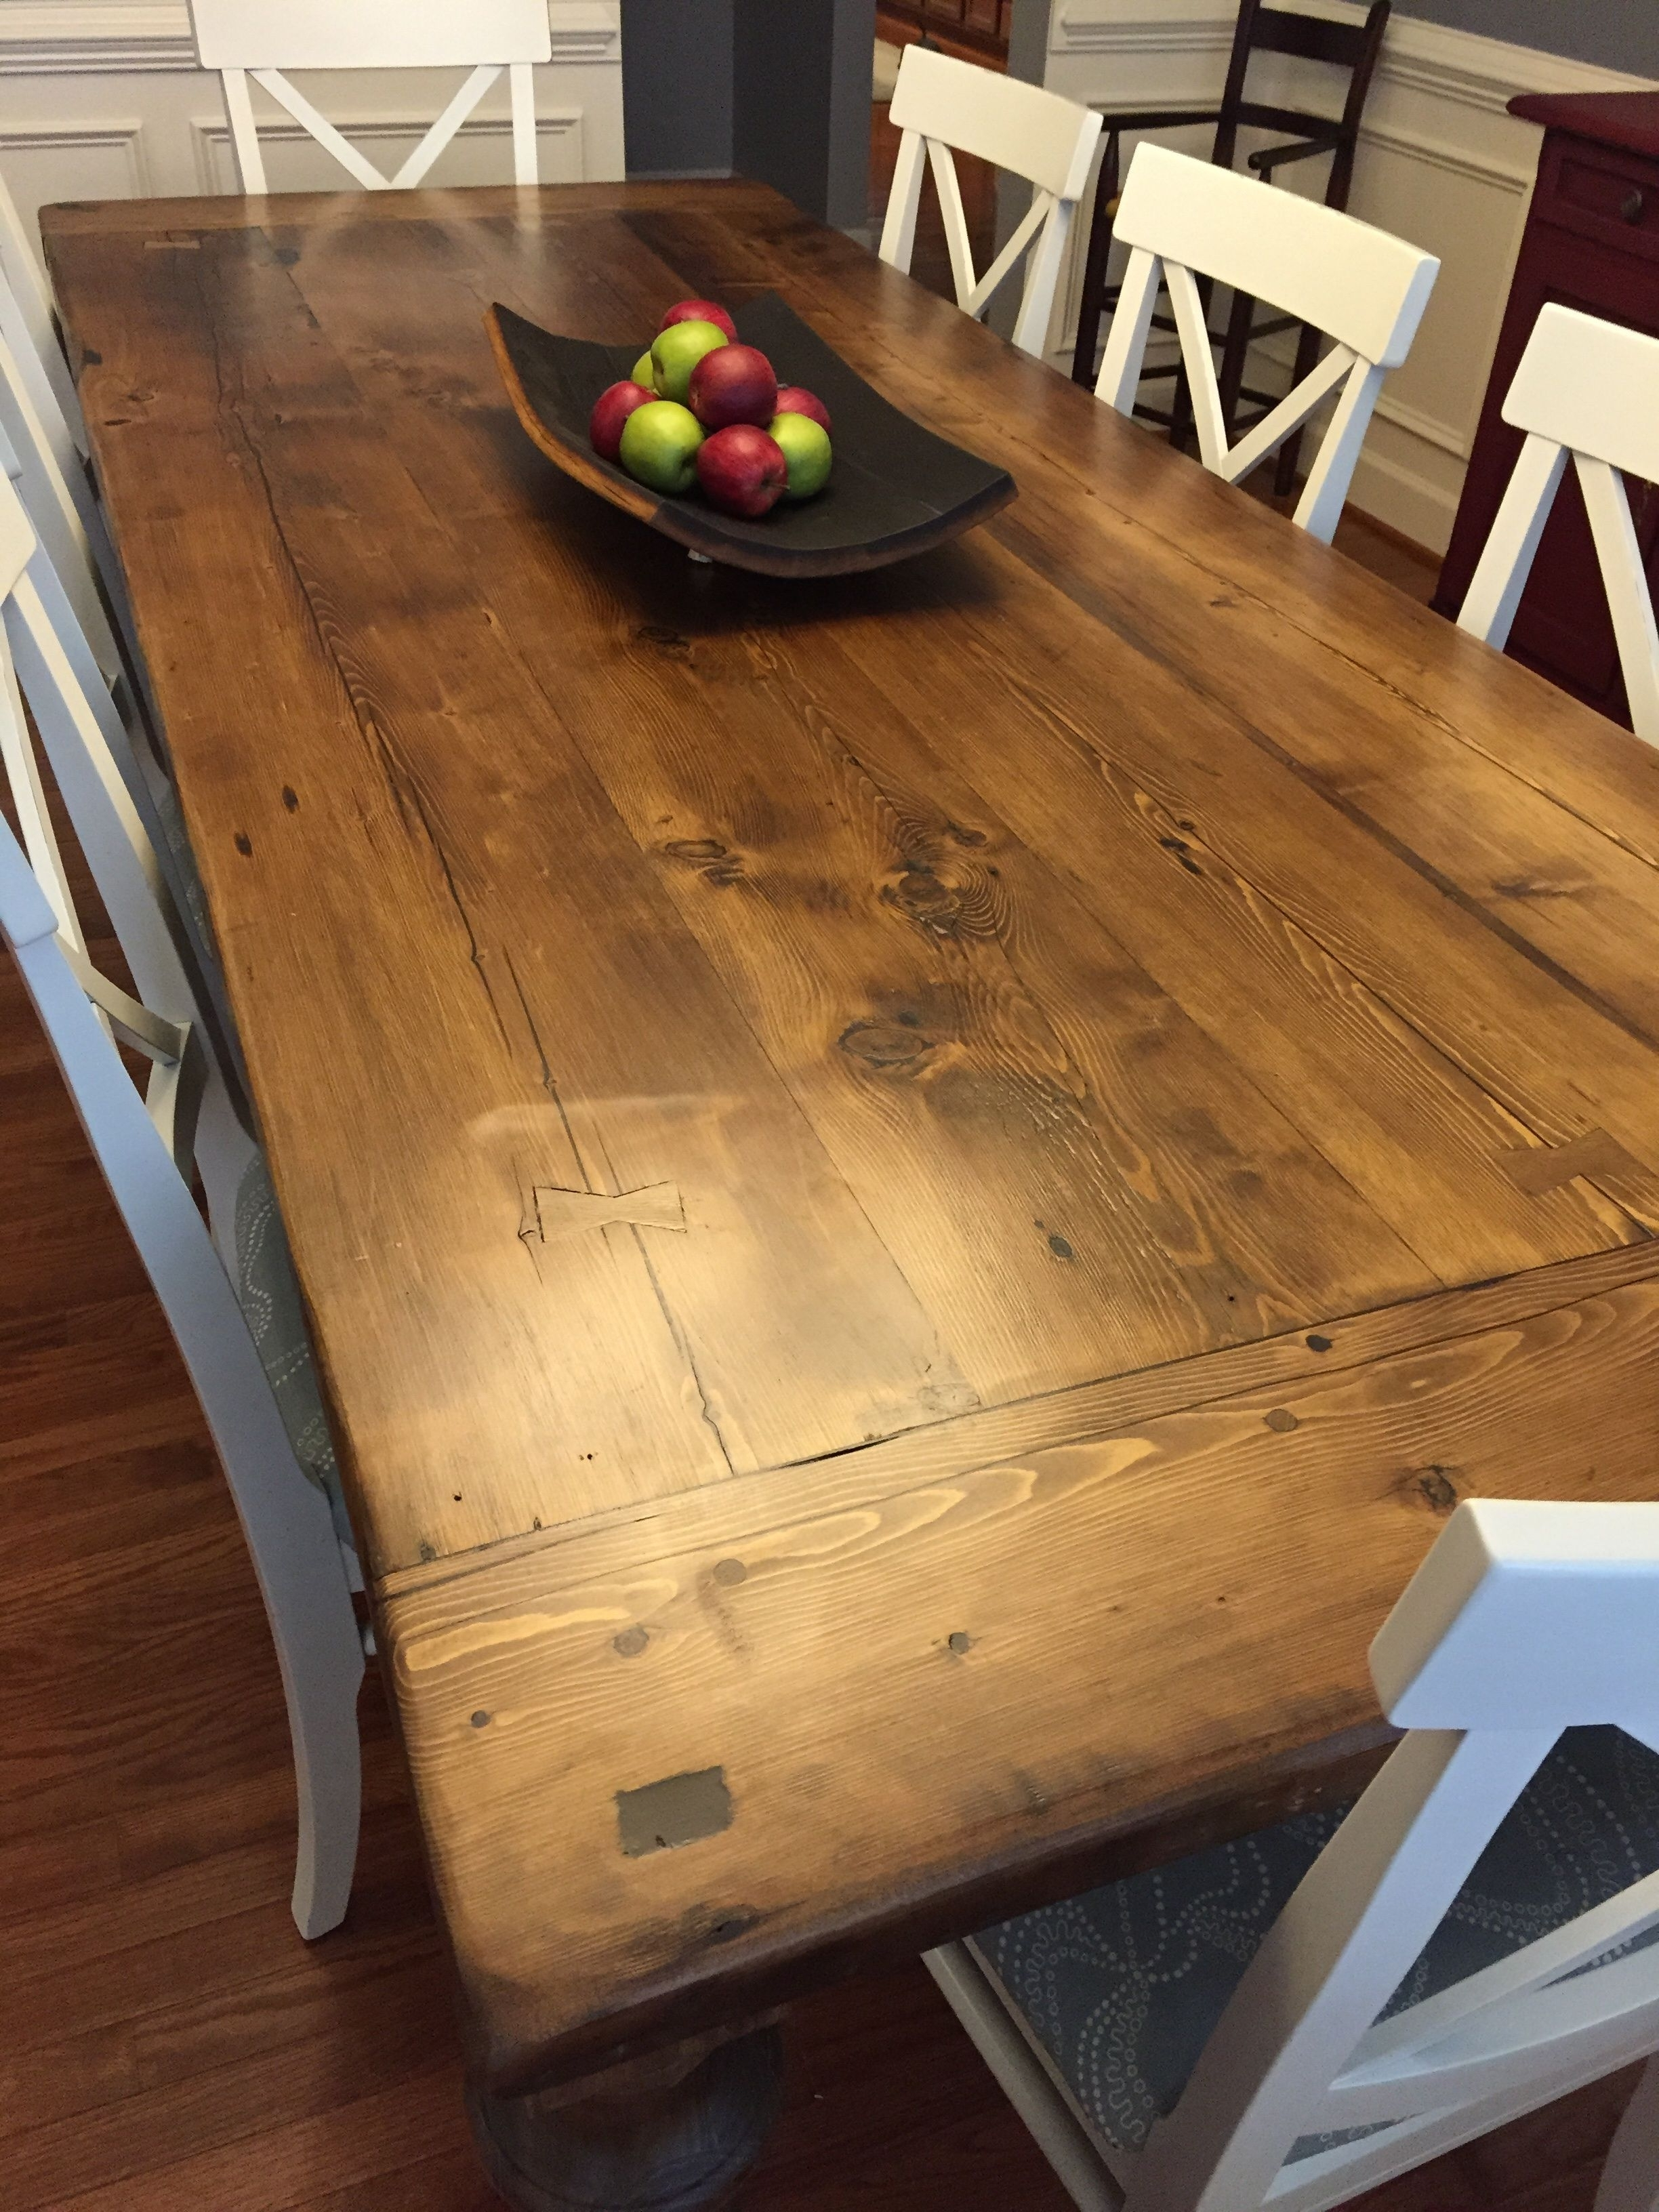 """Well Known Reclaimed Wood Dining Table With A 2"""" Thick Plank Top, Breadboards Intended For Cheap Reclaimed Wood Dining Tables (View 14 of 25)"""